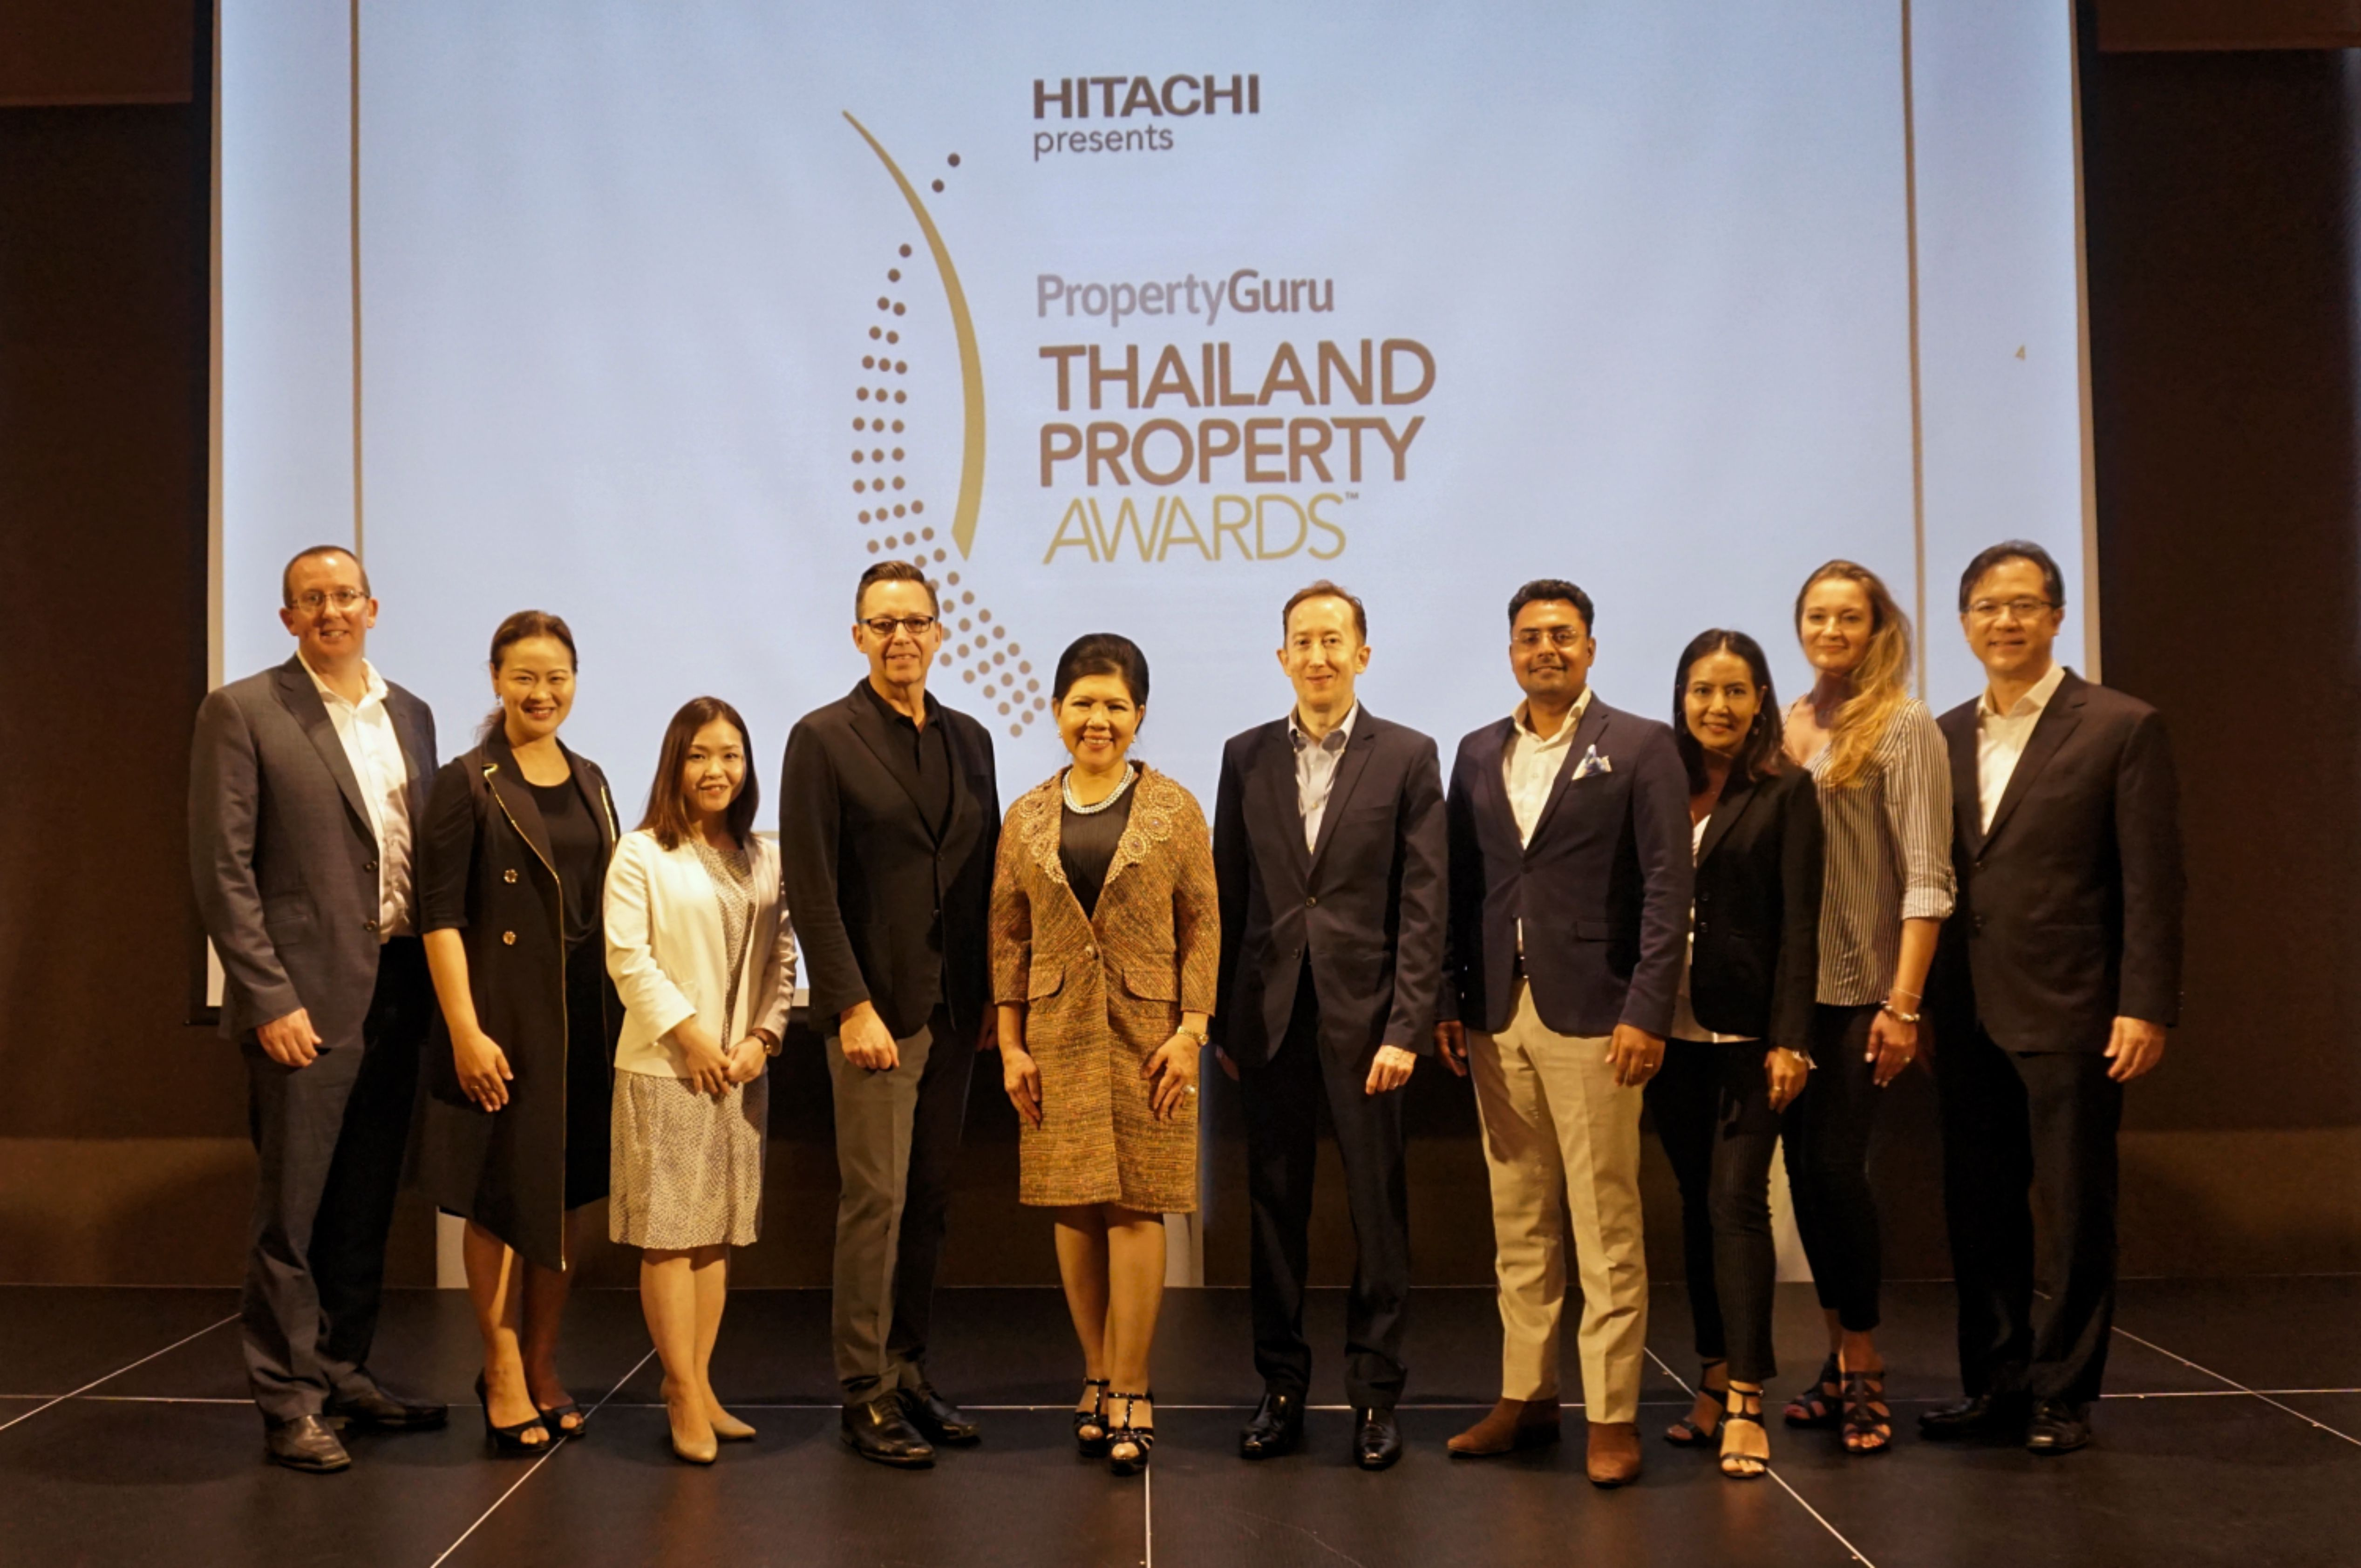 The 2019 PropertyGuru Thailand Property Awards officially kicked off with a press briefing at The Crystal Box of Gaysorn Tower in Bangkok, Thailand